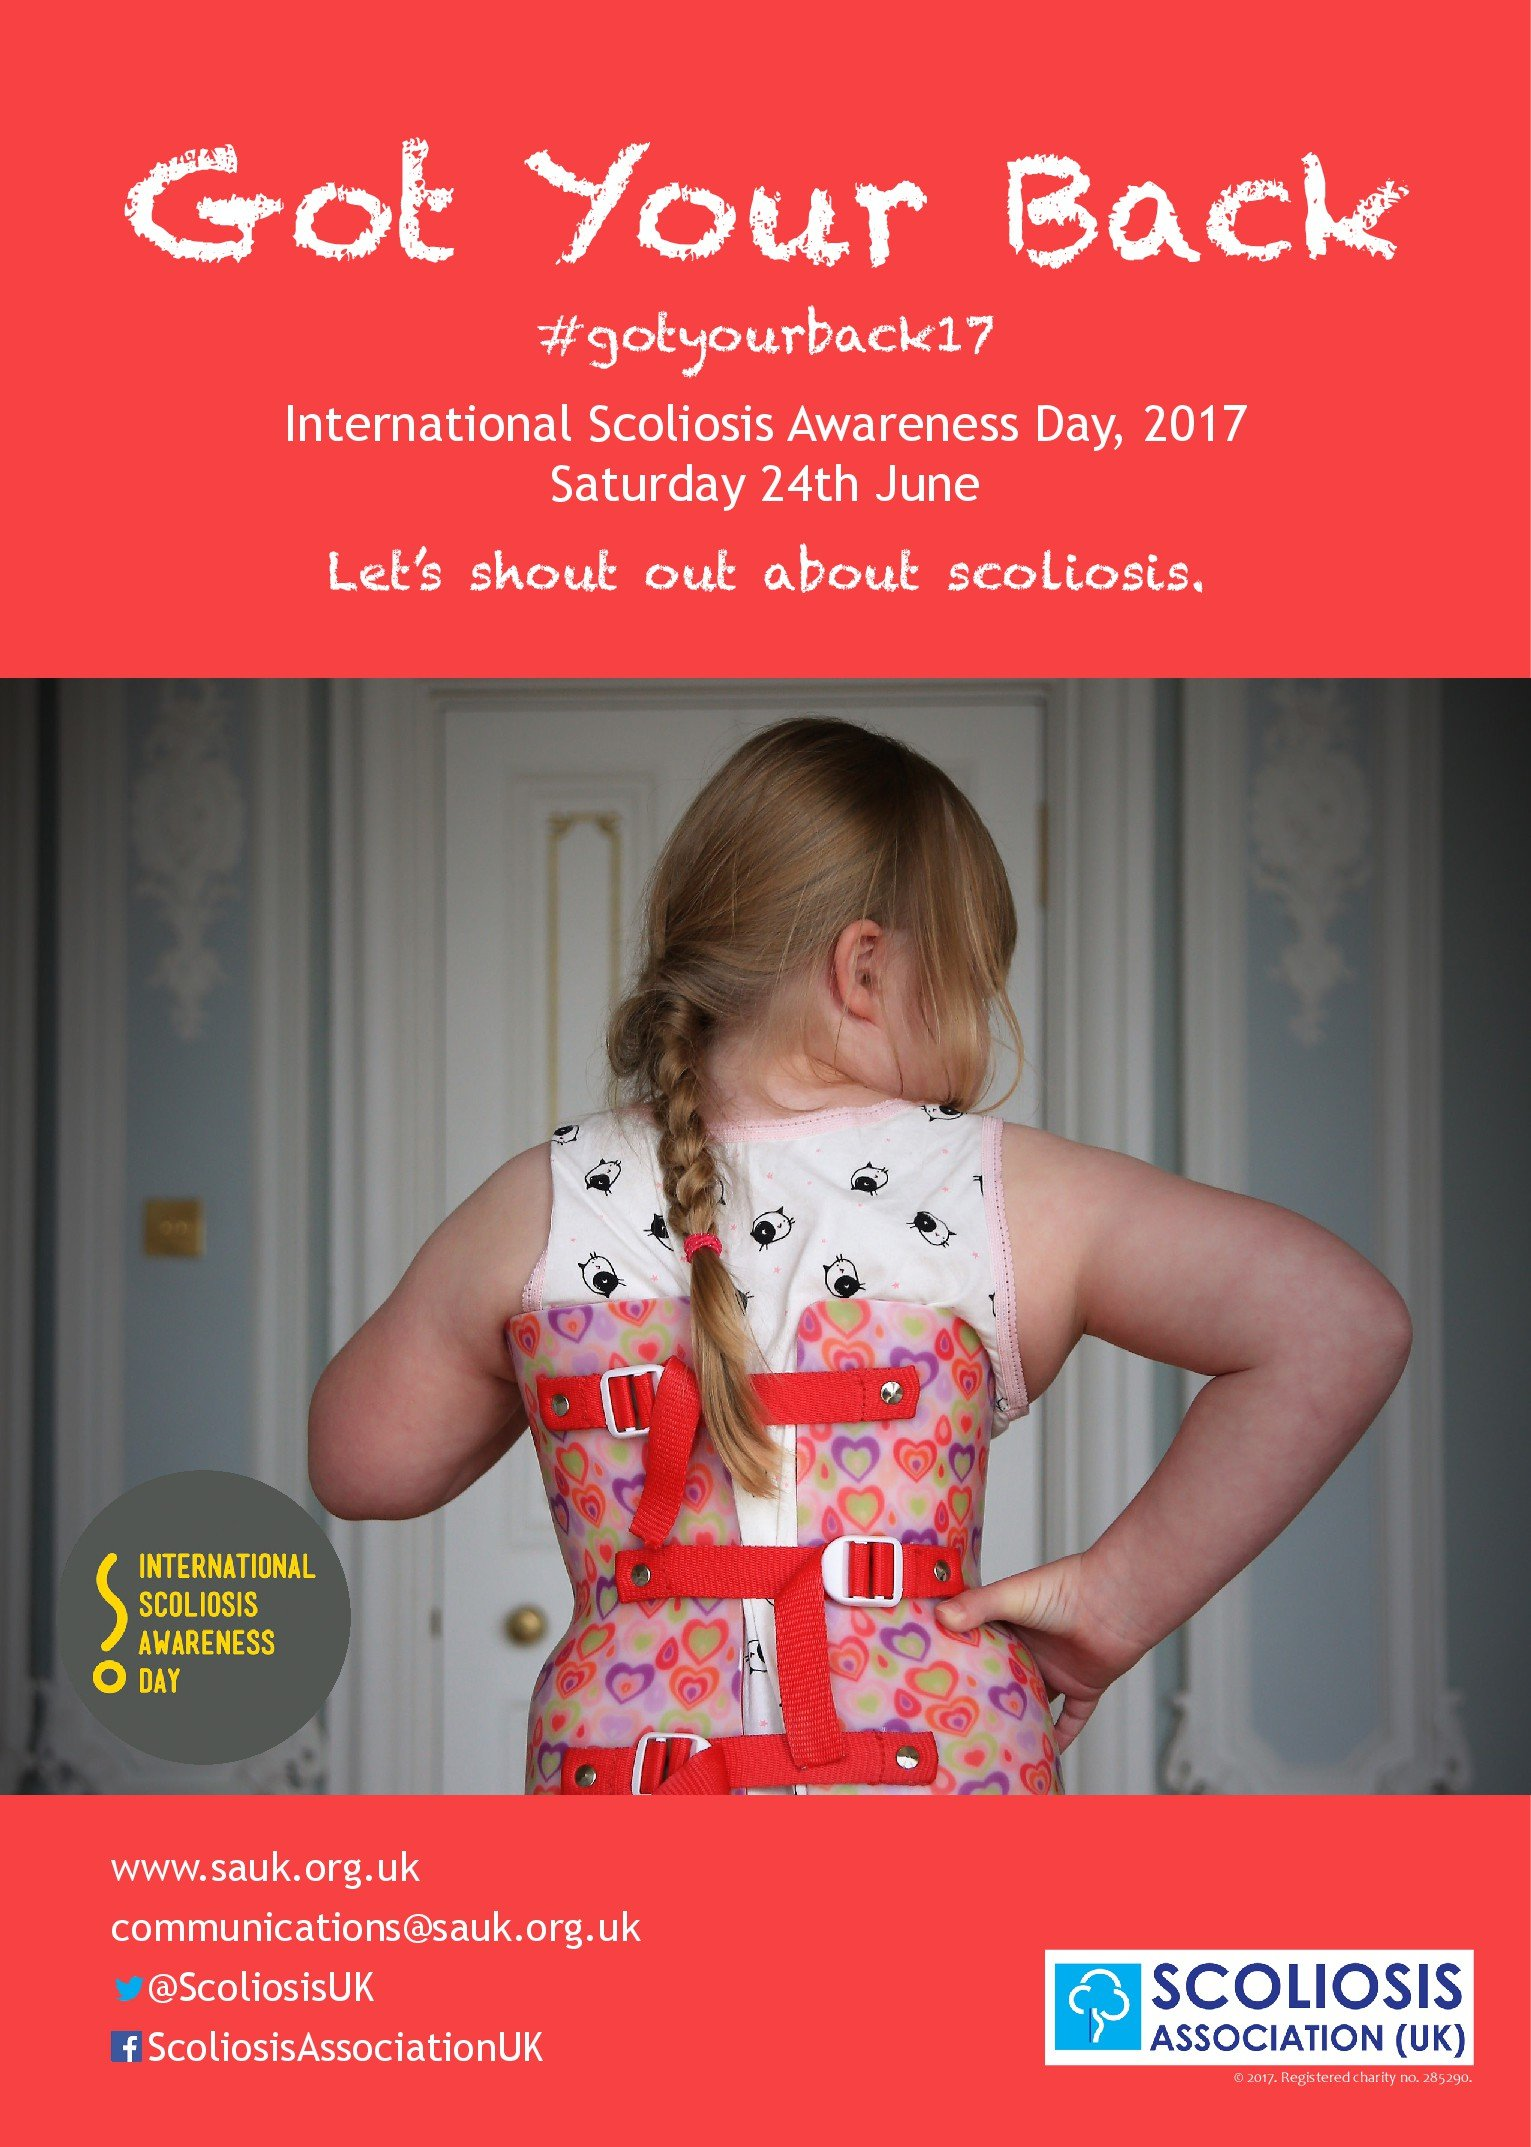 International Scoliosis Awareness Day 2017